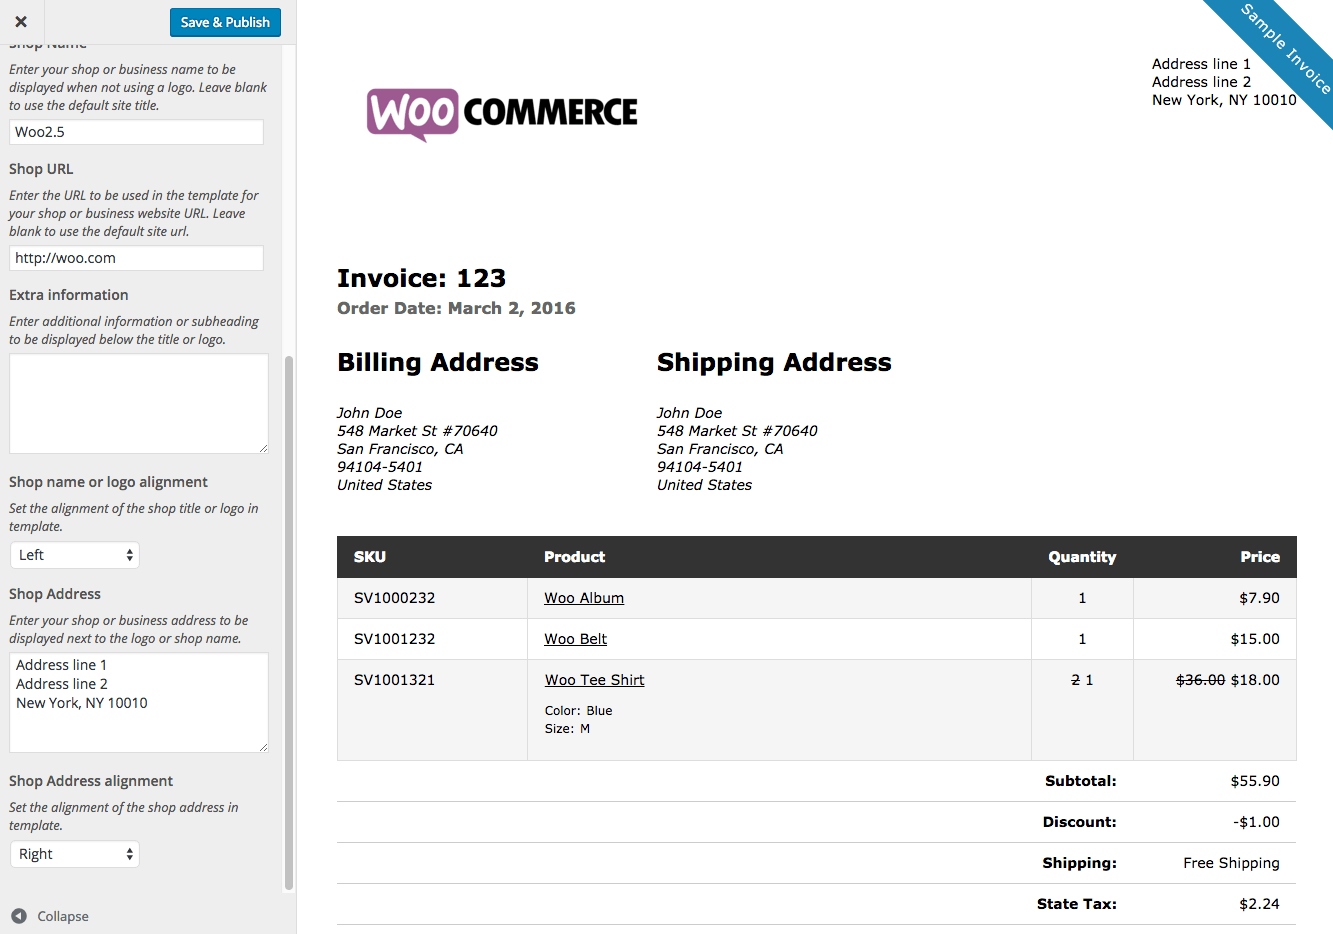 Massenargcus  Mesmerizing Print Invoices Amp Packing Lists  Woocommerce With Gorgeous Woocommerce Print Invoices  Packing Lists Customizer With Awesome Free Commercial Invoice Also Dfas My Invoice In Addition Invoicing Solutions And Dealer Invoices As Well As Vehicle Invoice Prices Additionally Free Downloadable Invoice Template Word From Woocommercecom With Massenargcus  Gorgeous Print Invoices Amp Packing Lists  Woocommerce With Awesome Woocommerce Print Invoices  Packing Lists Customizer And Mesmerizing Free Commercial Invoice Also Dfas My Invoice In Addition Invoicing Solutions From Woocommercecom